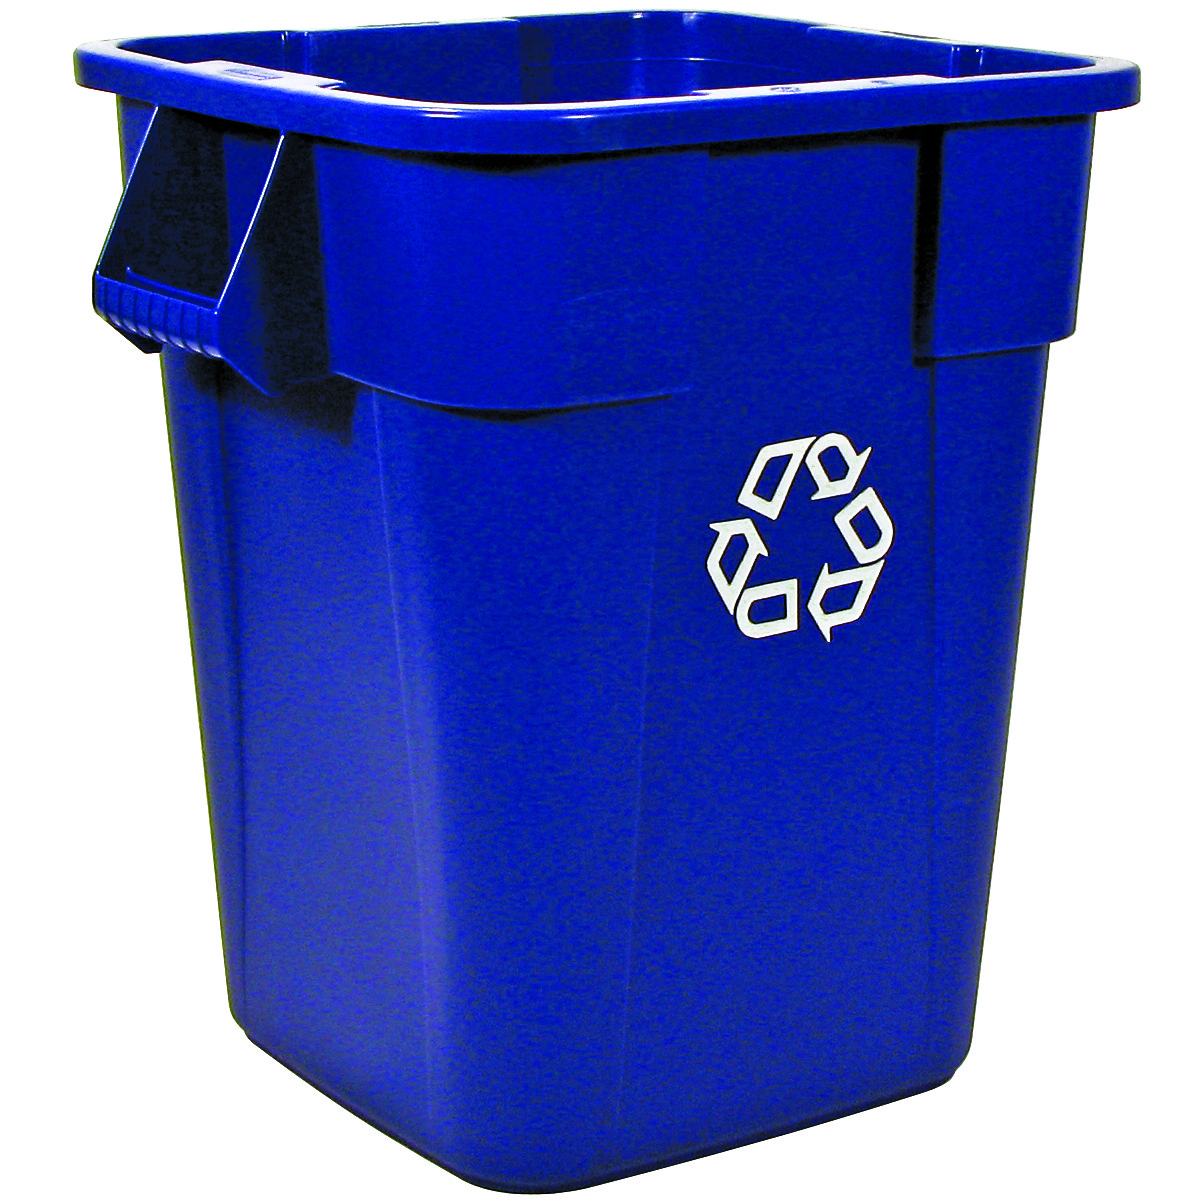 rubbermaid 40 gallon brute square blue recycling container 3536 73 trash cans warehouse. Black Bedroom Furniture Sets. Home Design Ideas